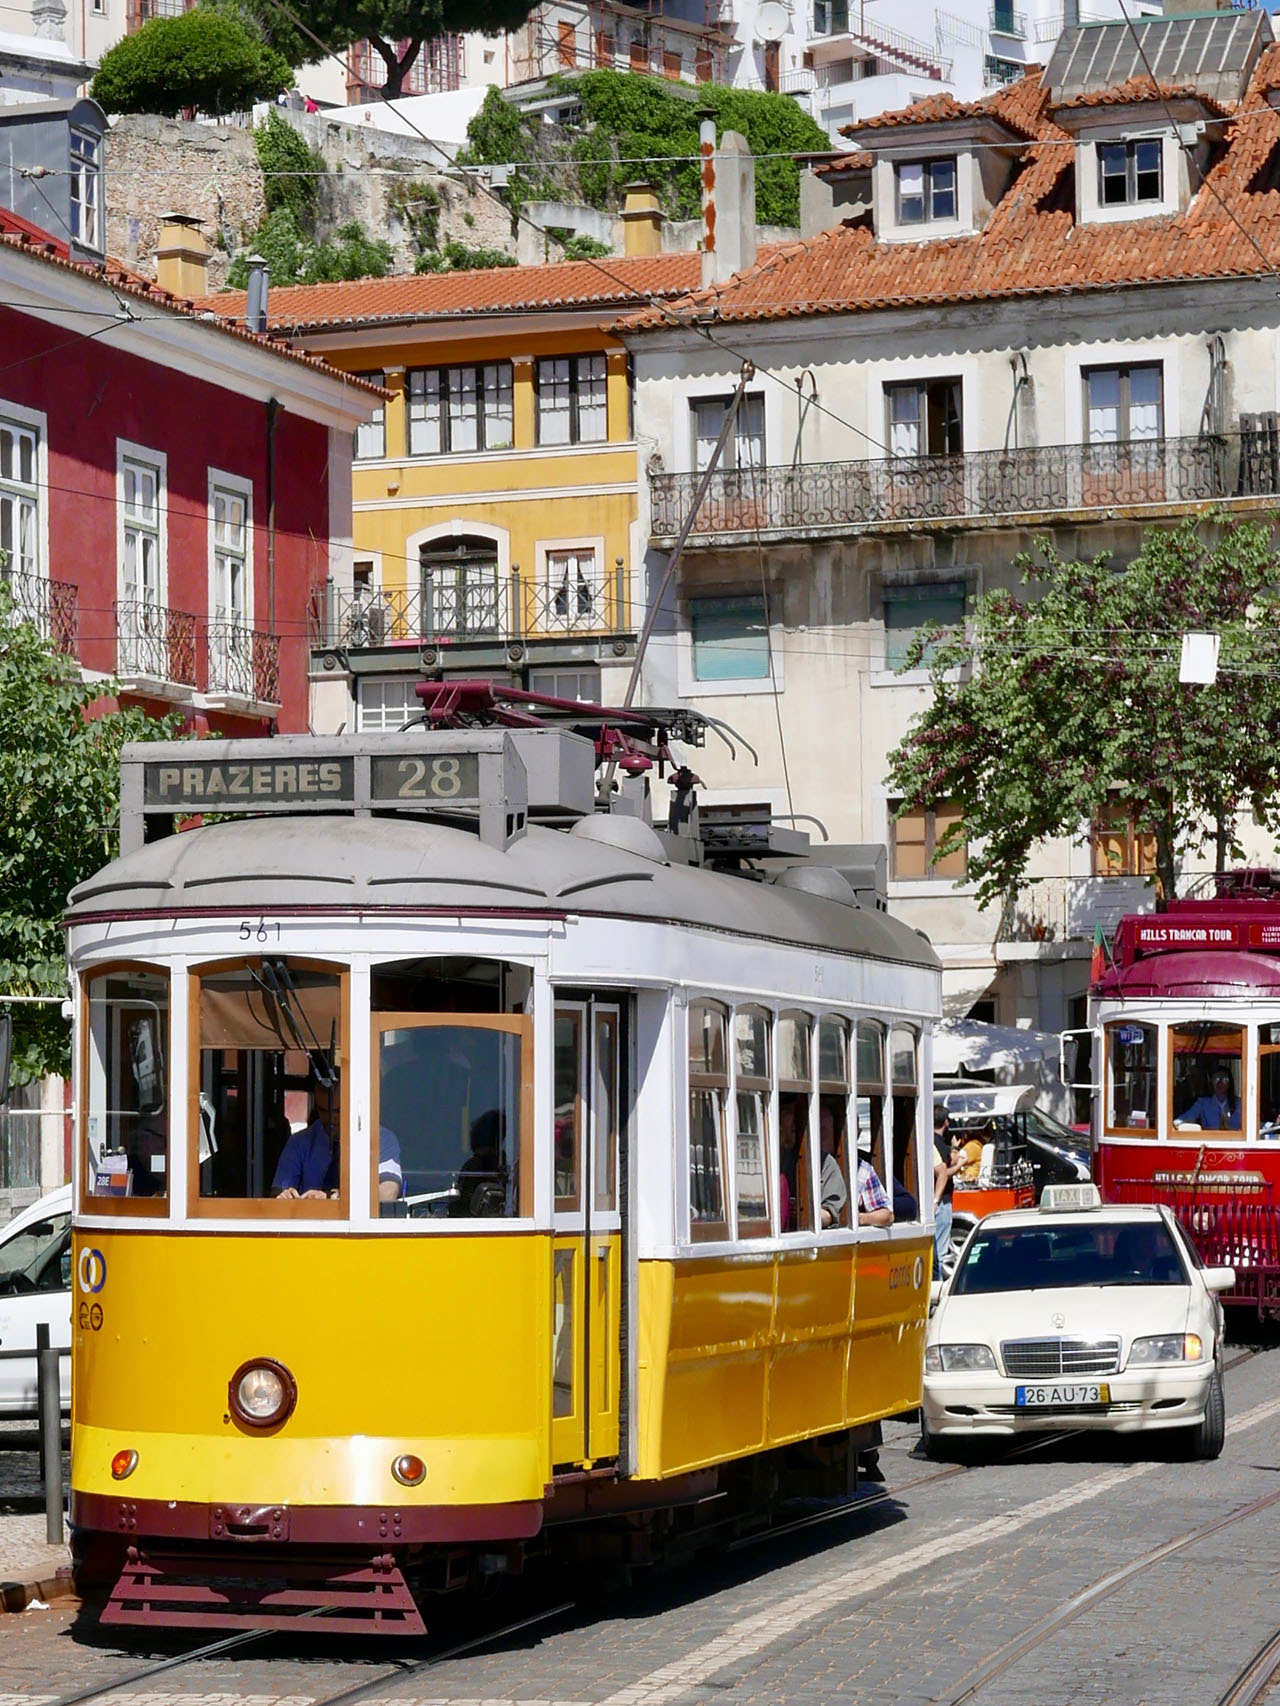 Cara Sharratt Travel - Tram - Lisbon, Portugal